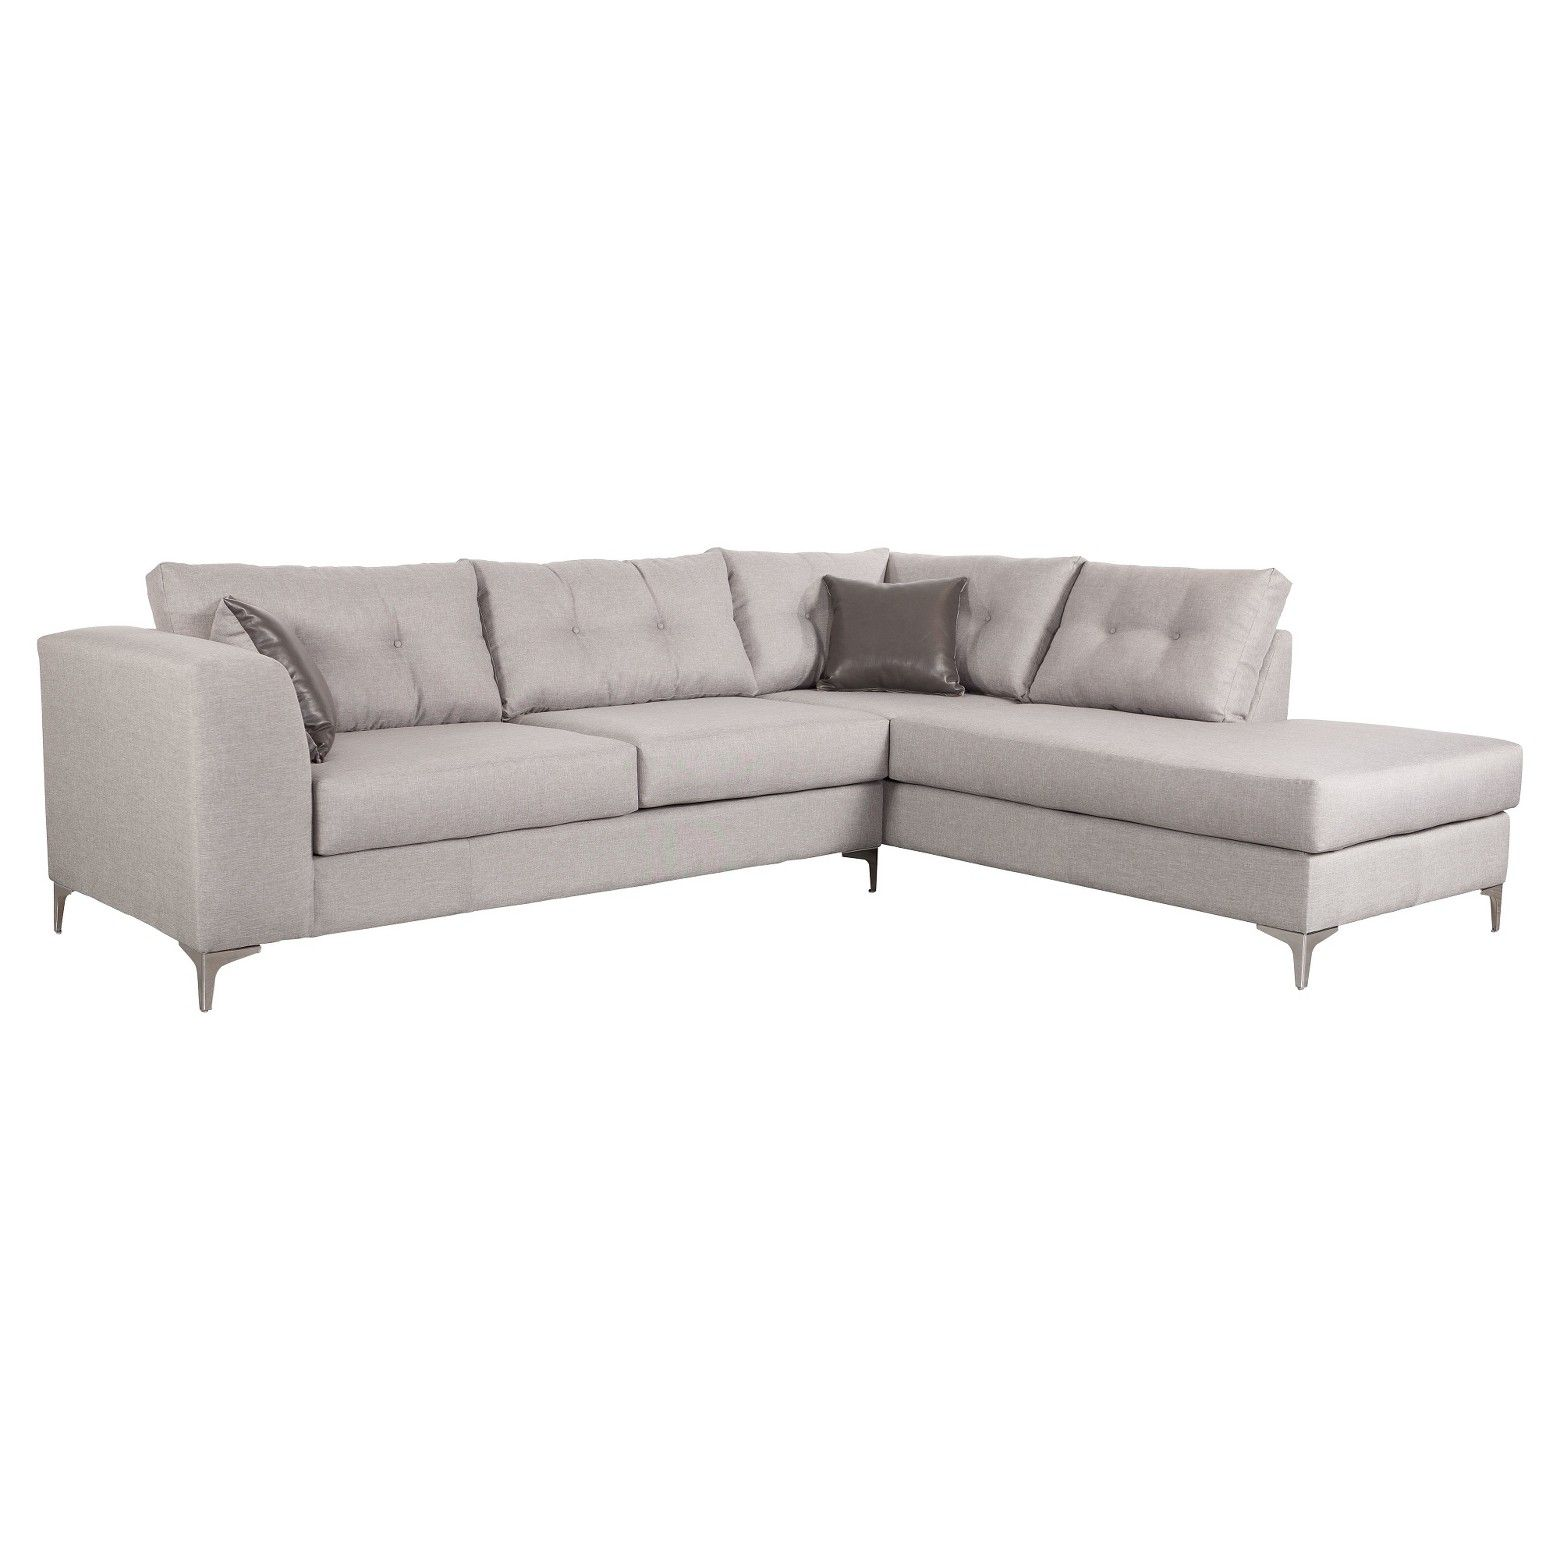 Zm home upholstered and polished stainless steel pc rhf sectional